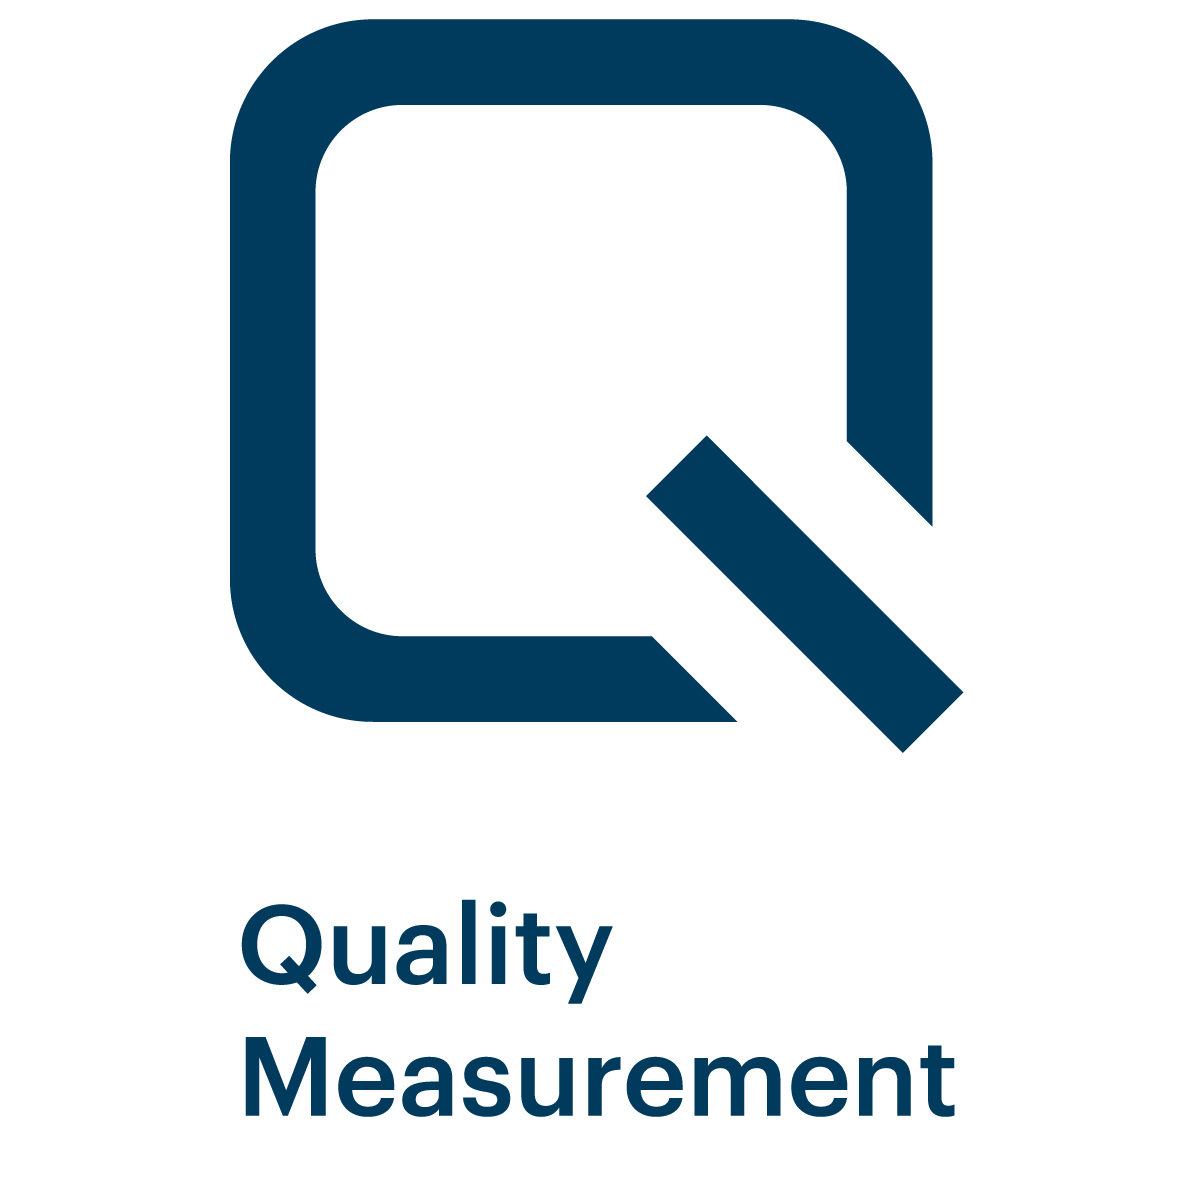 QualityMeasurement